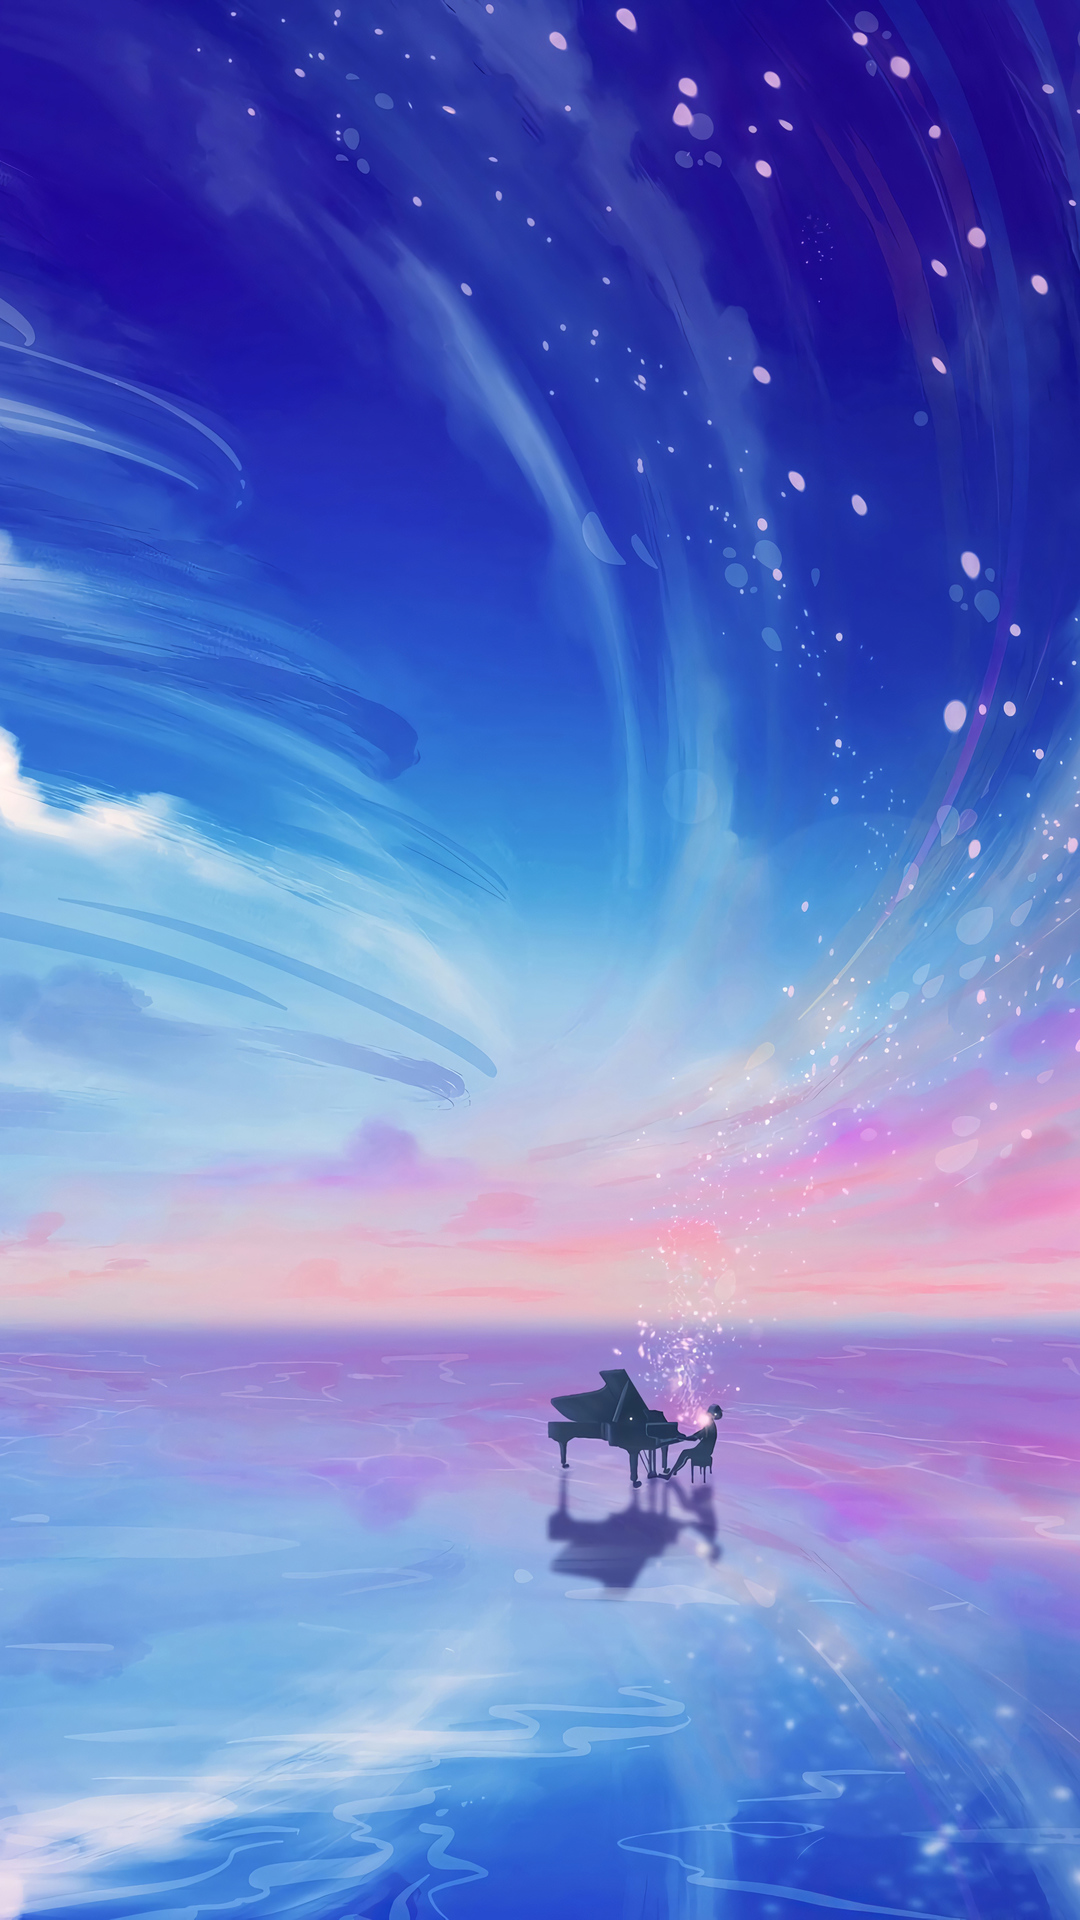 Anime Girl Playing Piano Wallpaper